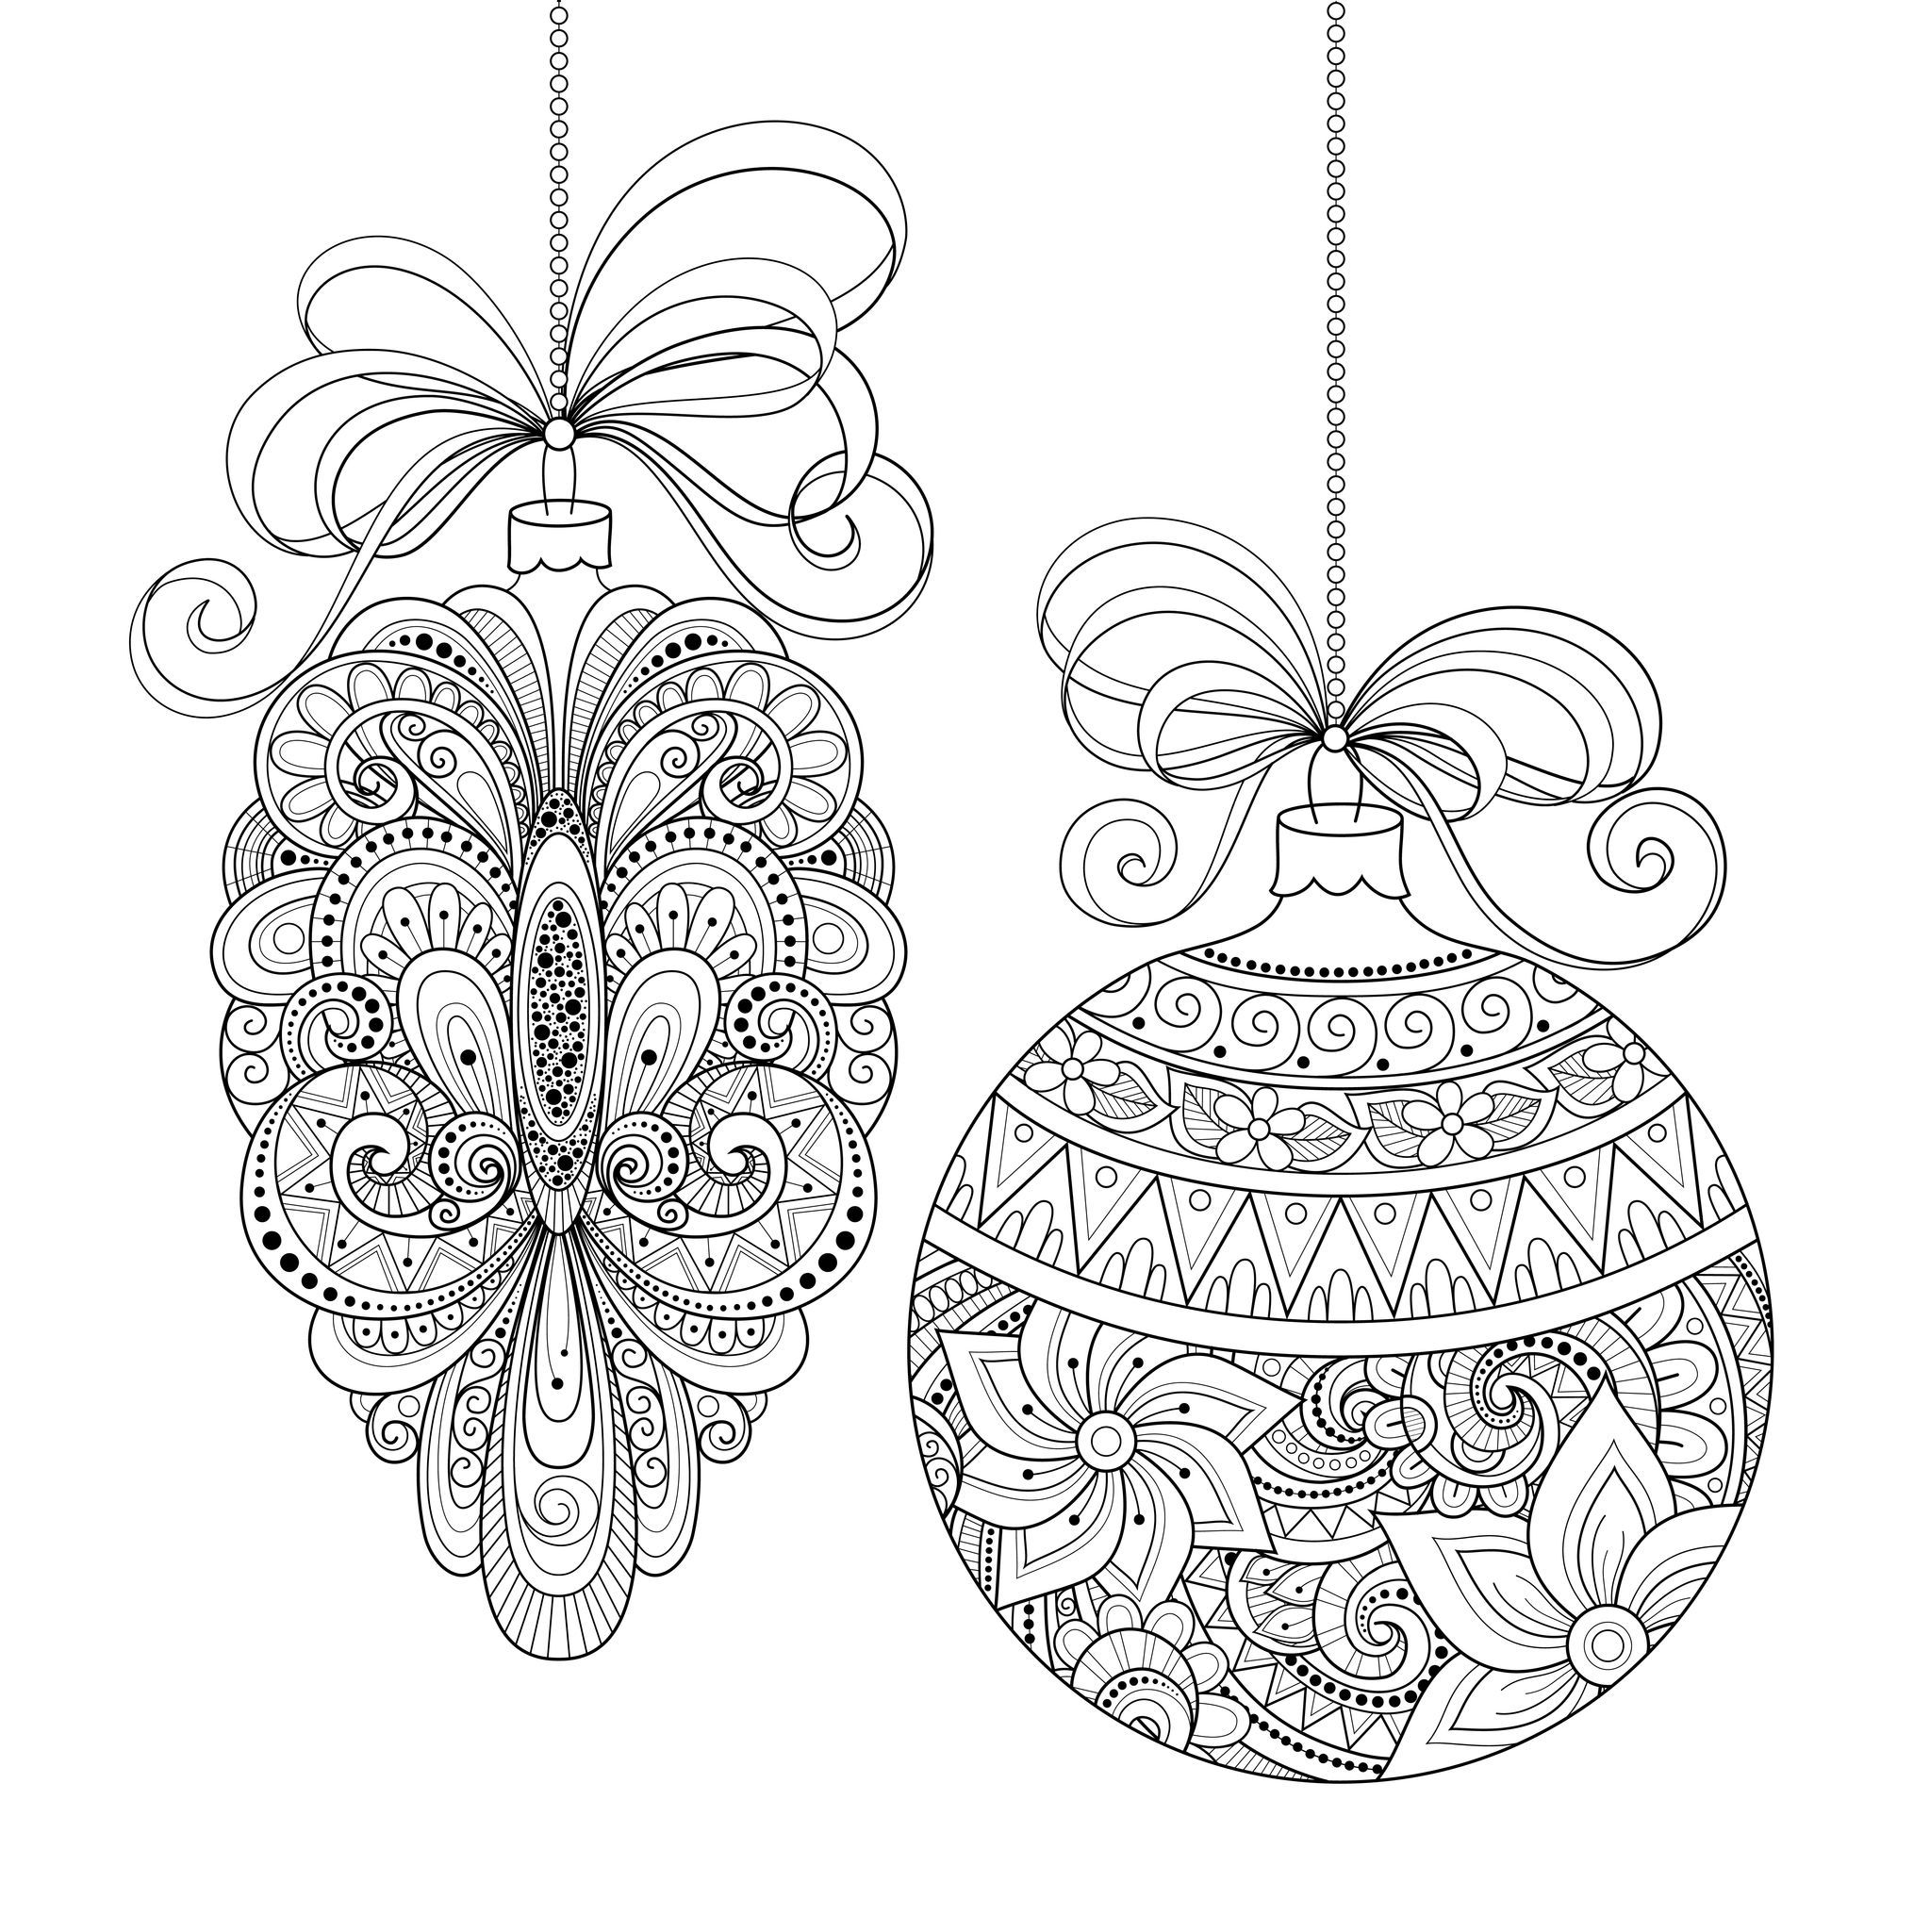 Coloring Pages Make Your Own Coloring Pages Online christmas ornaments use this coloring page to make your own greeting book pages pinterest c